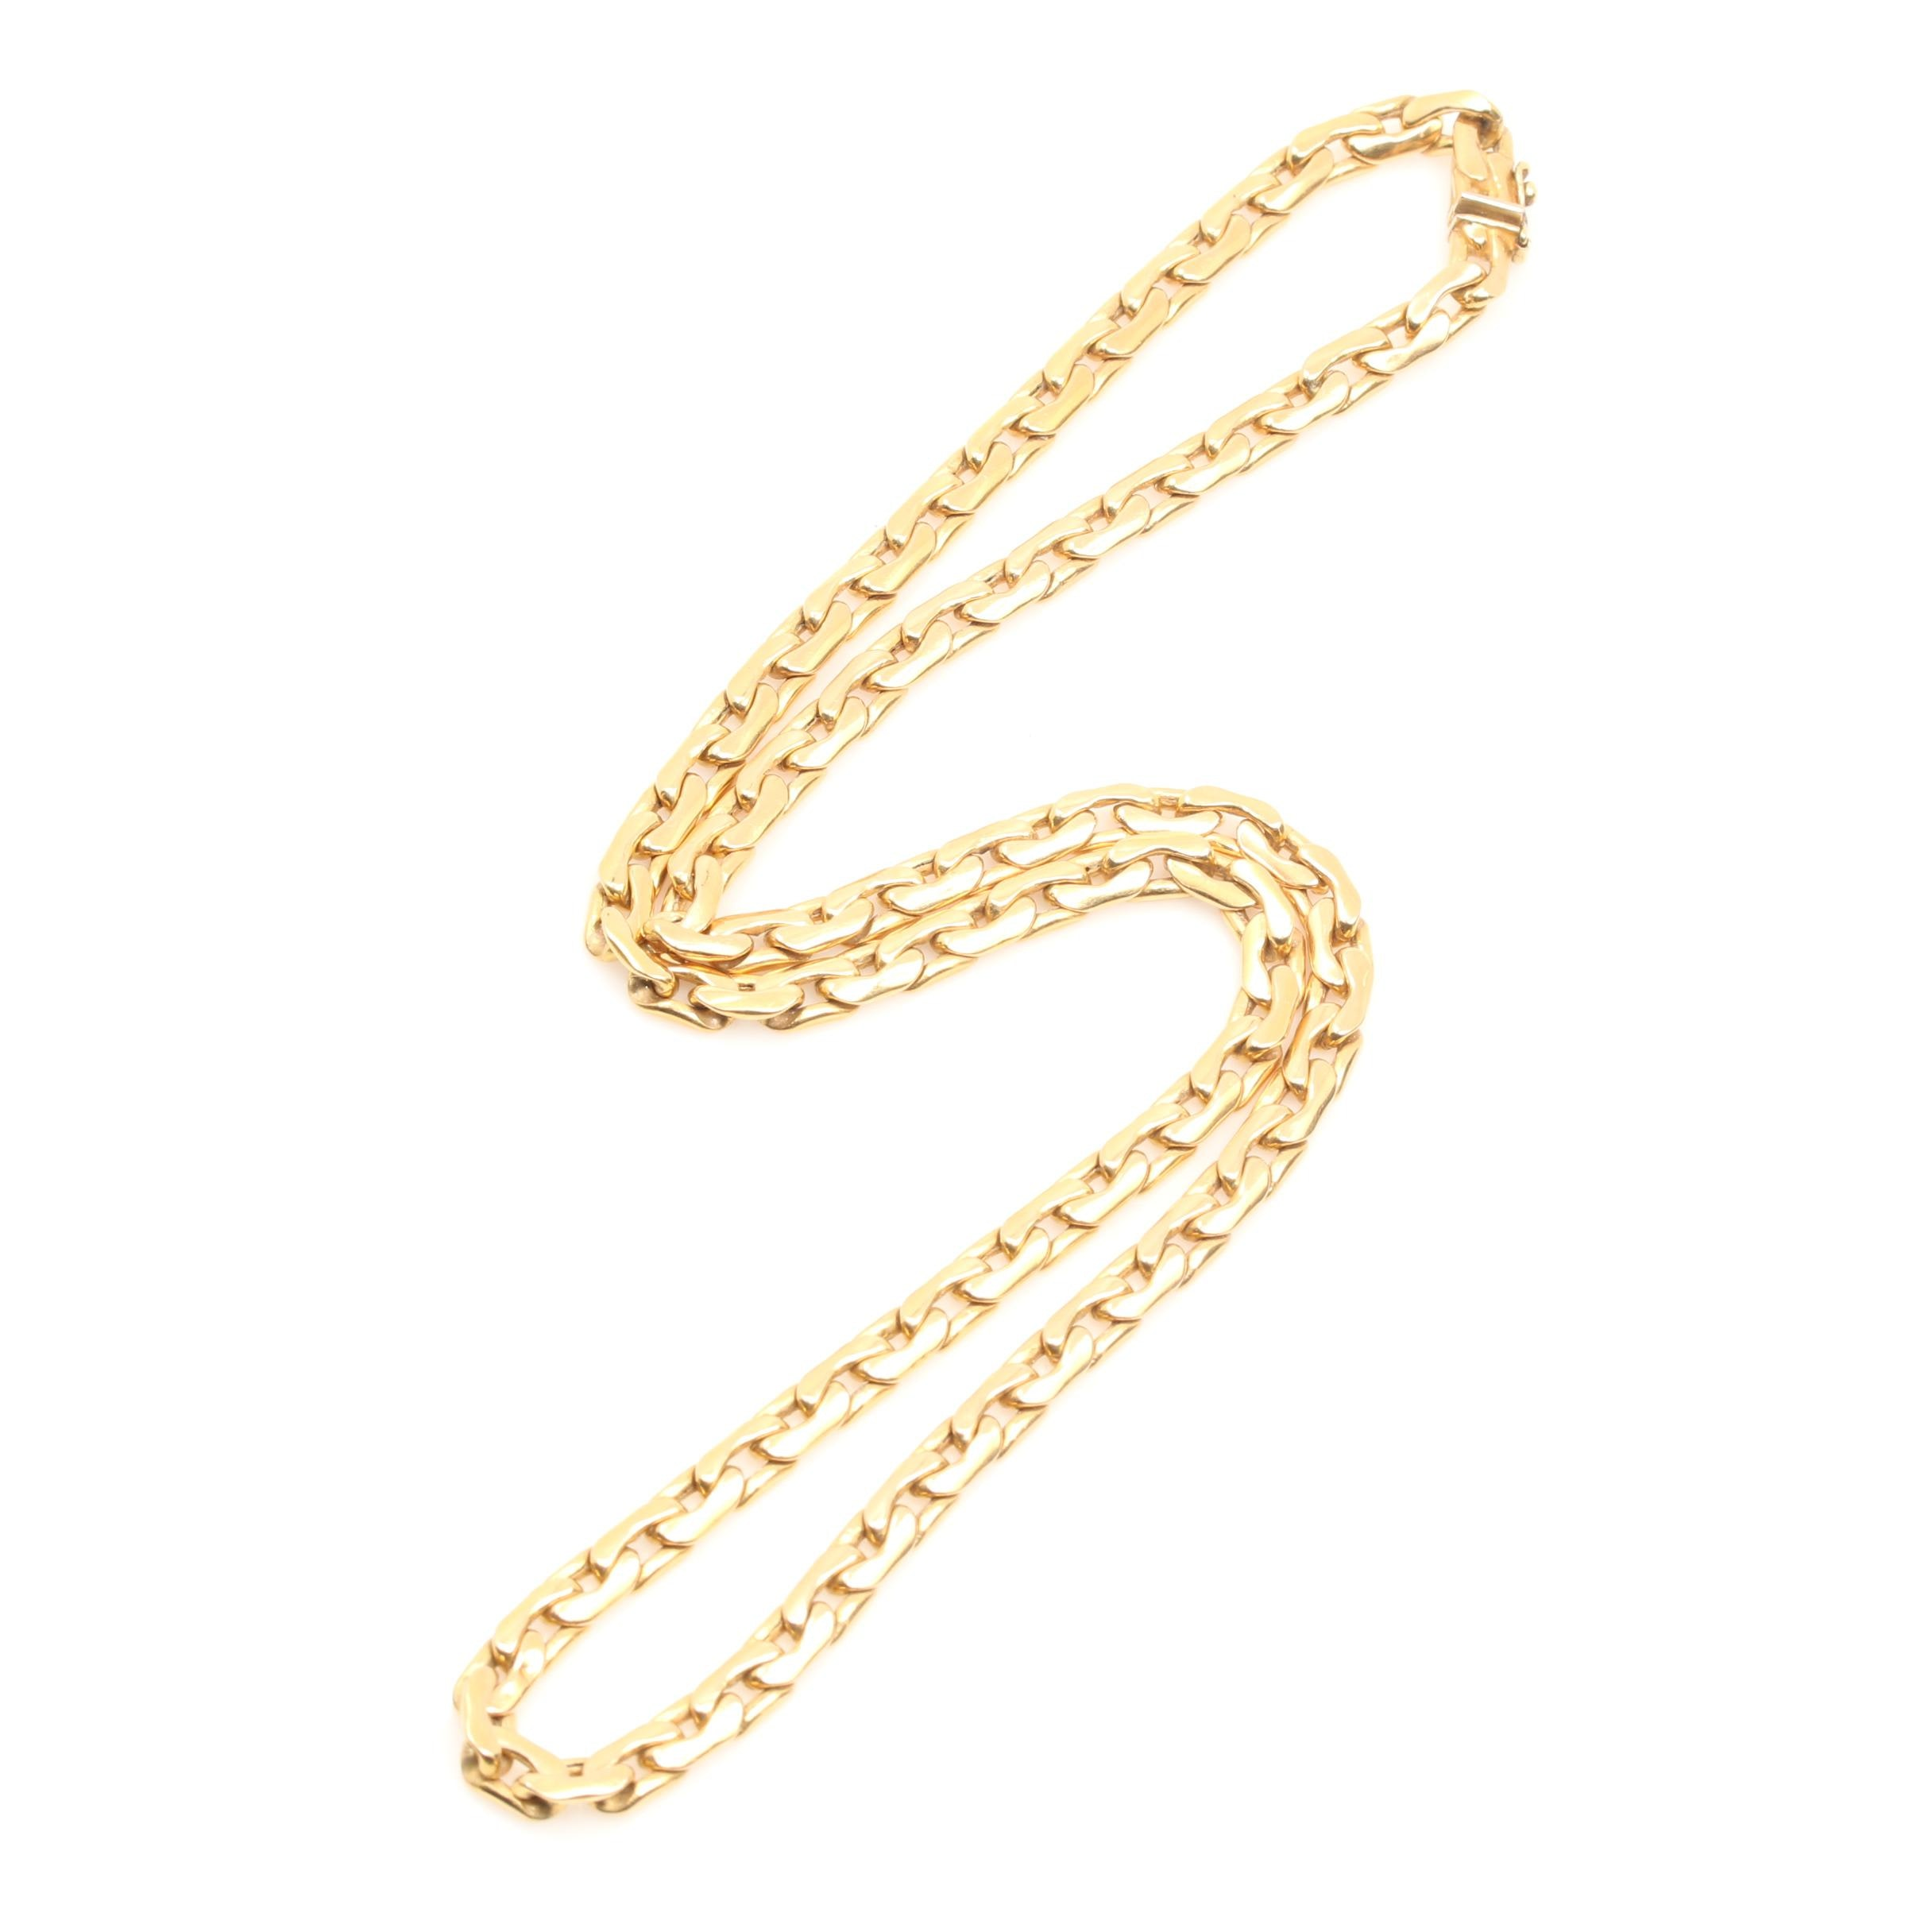 14K Yellow Gold Italian Flat C-Link Chain Necklace